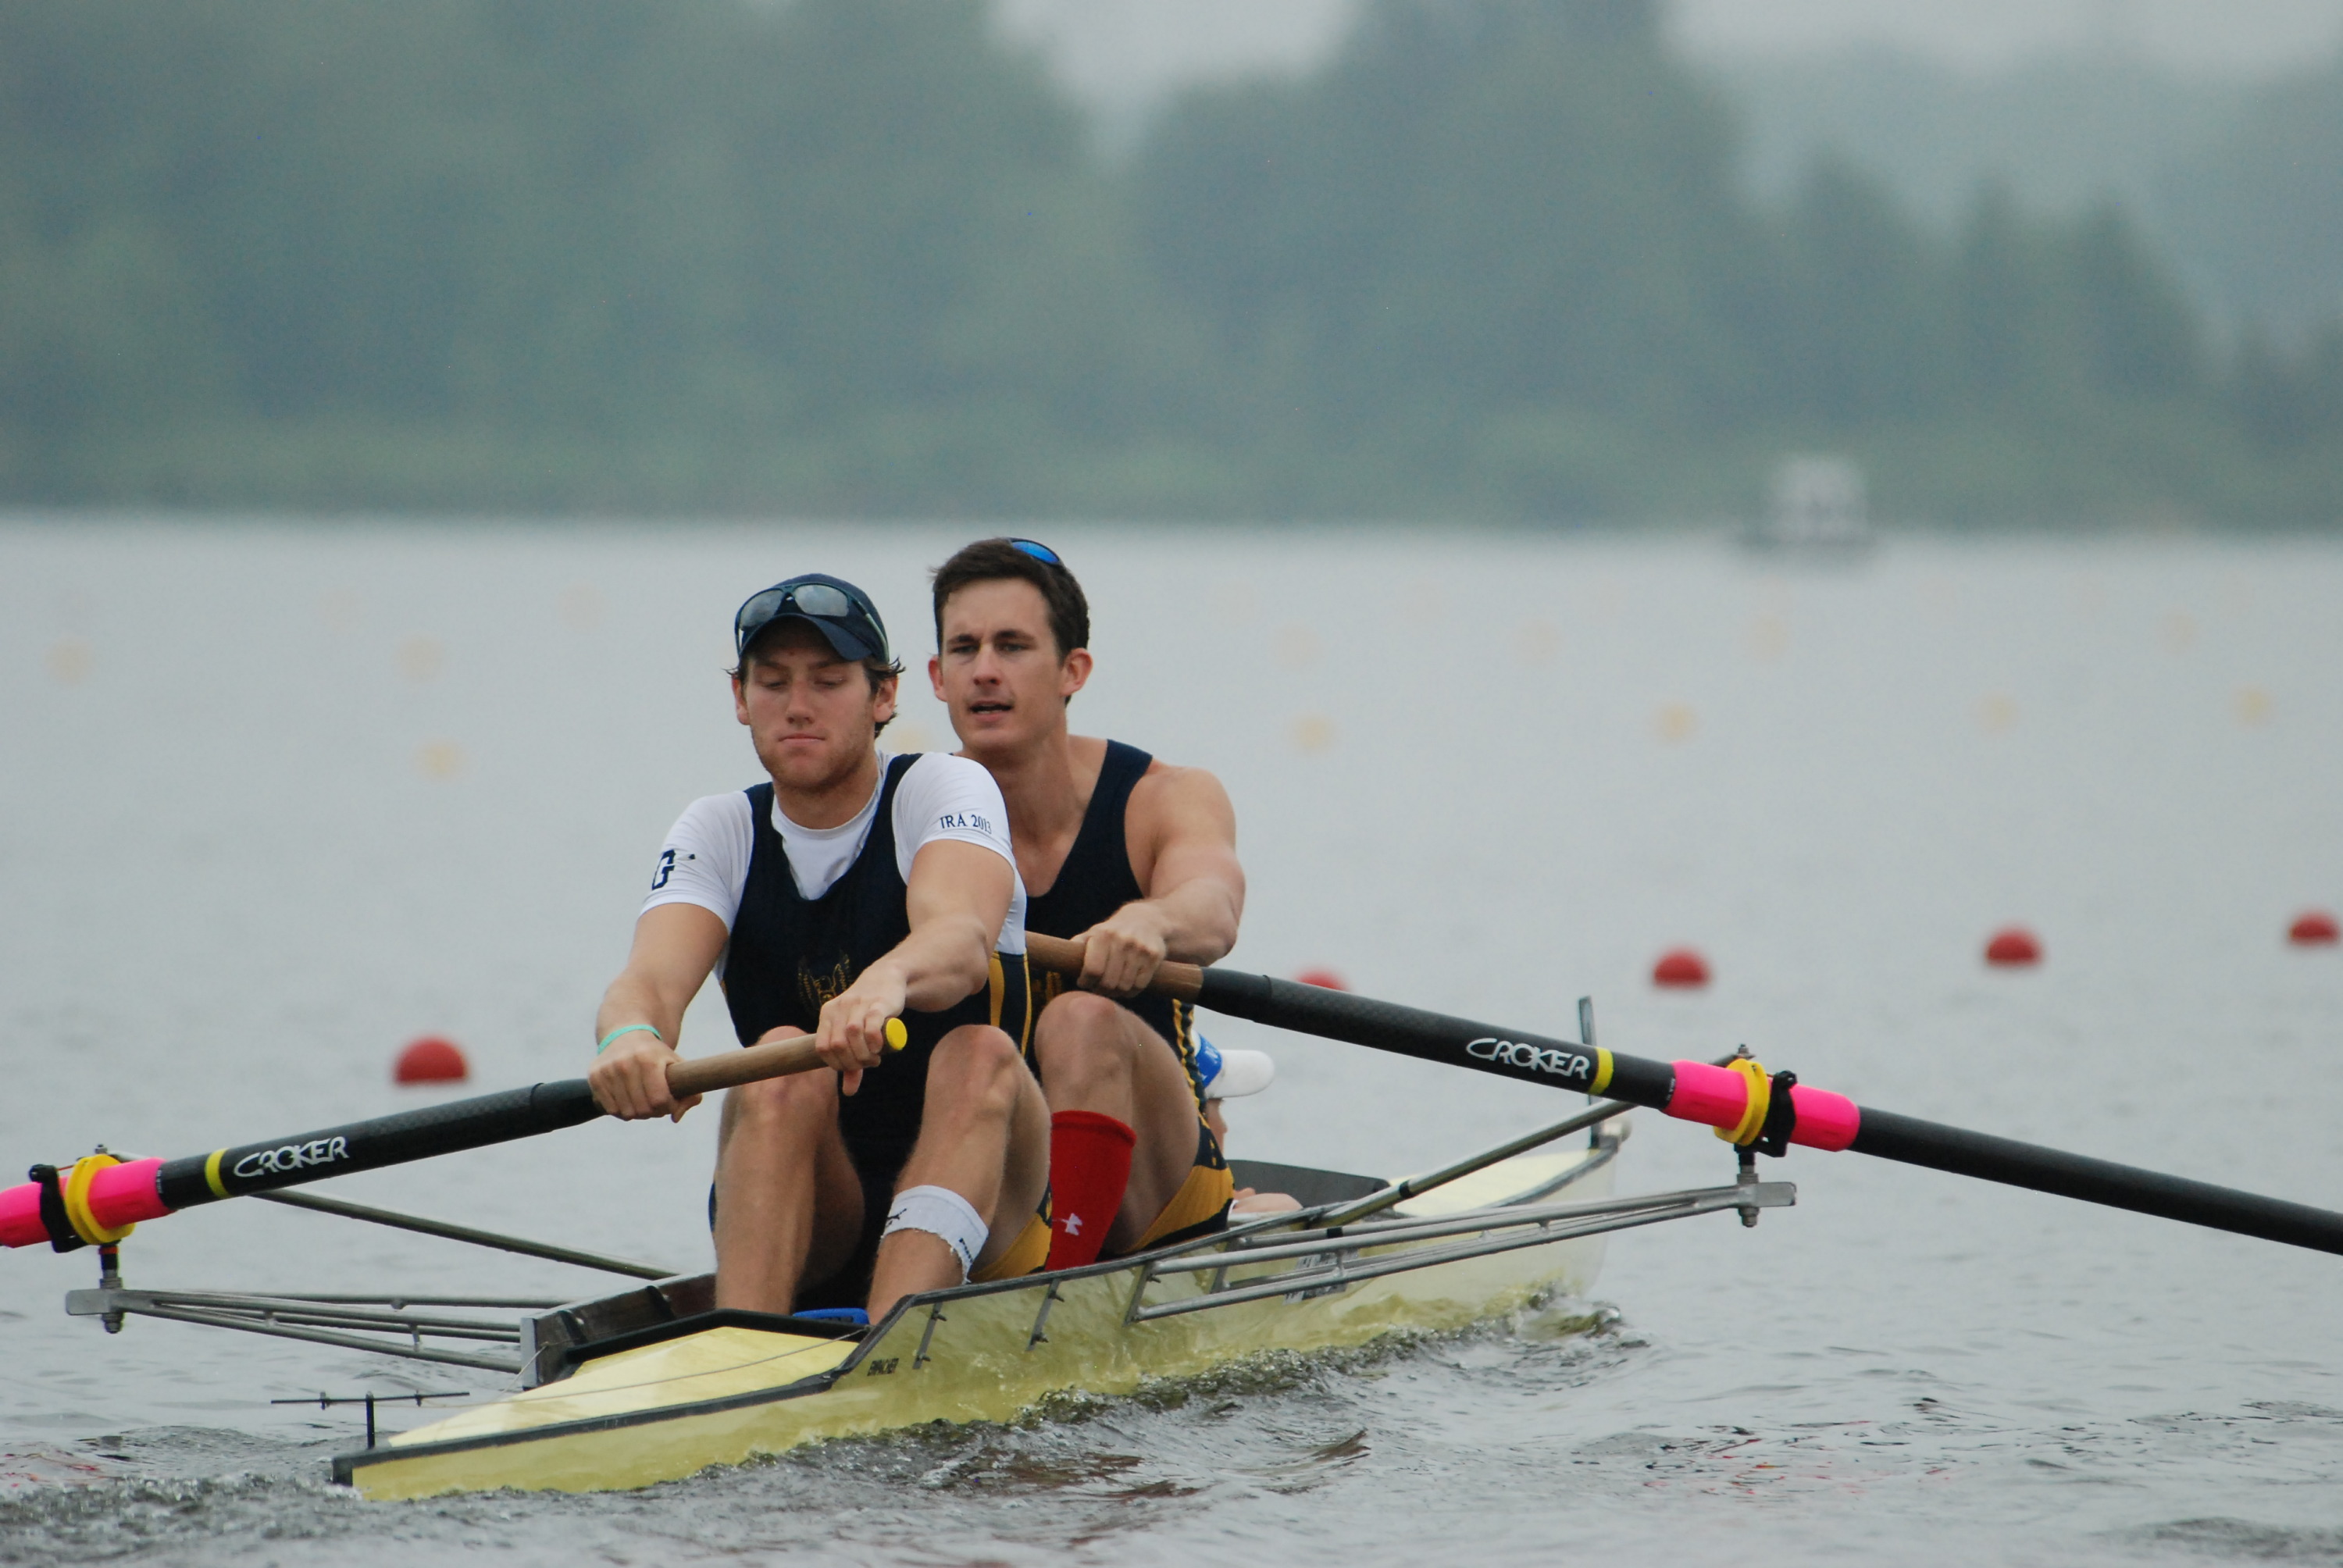 Henry Hoffstot (stroke) and Jack Carlson (coxswain) will represent the U.S. in Amsterdam next week.